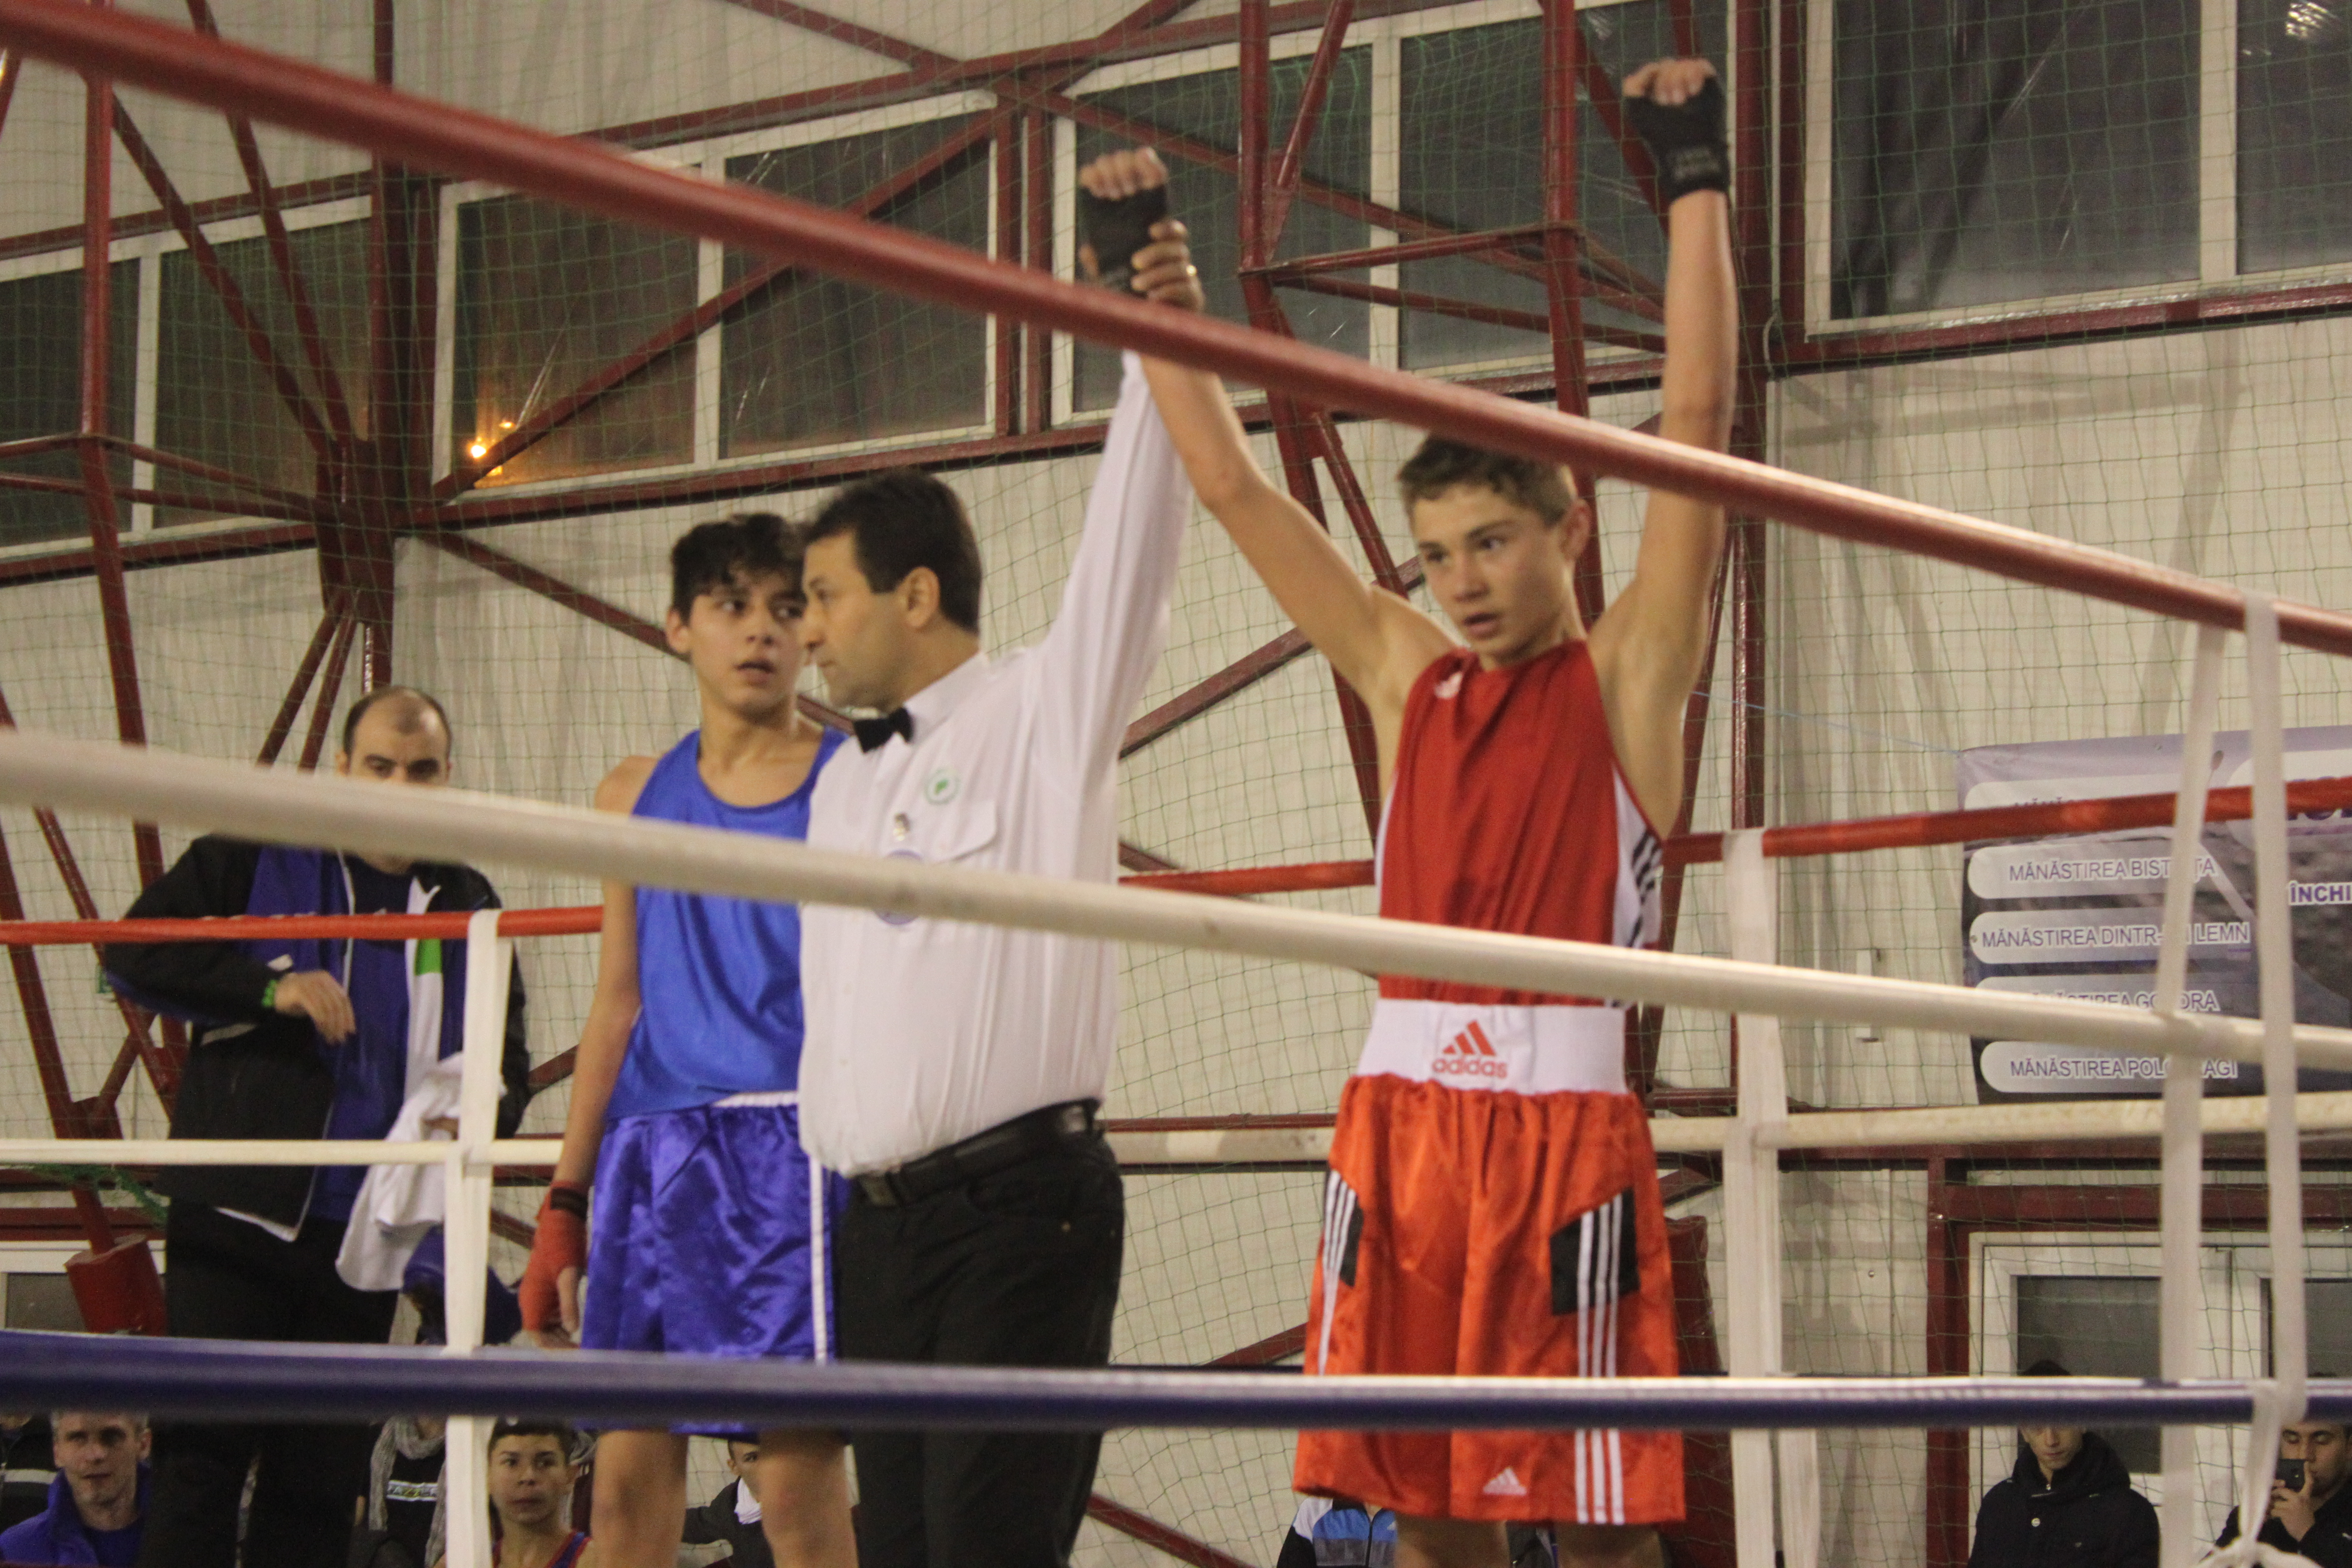 Kazakhstan - Ucraina, finala World Series Boxing